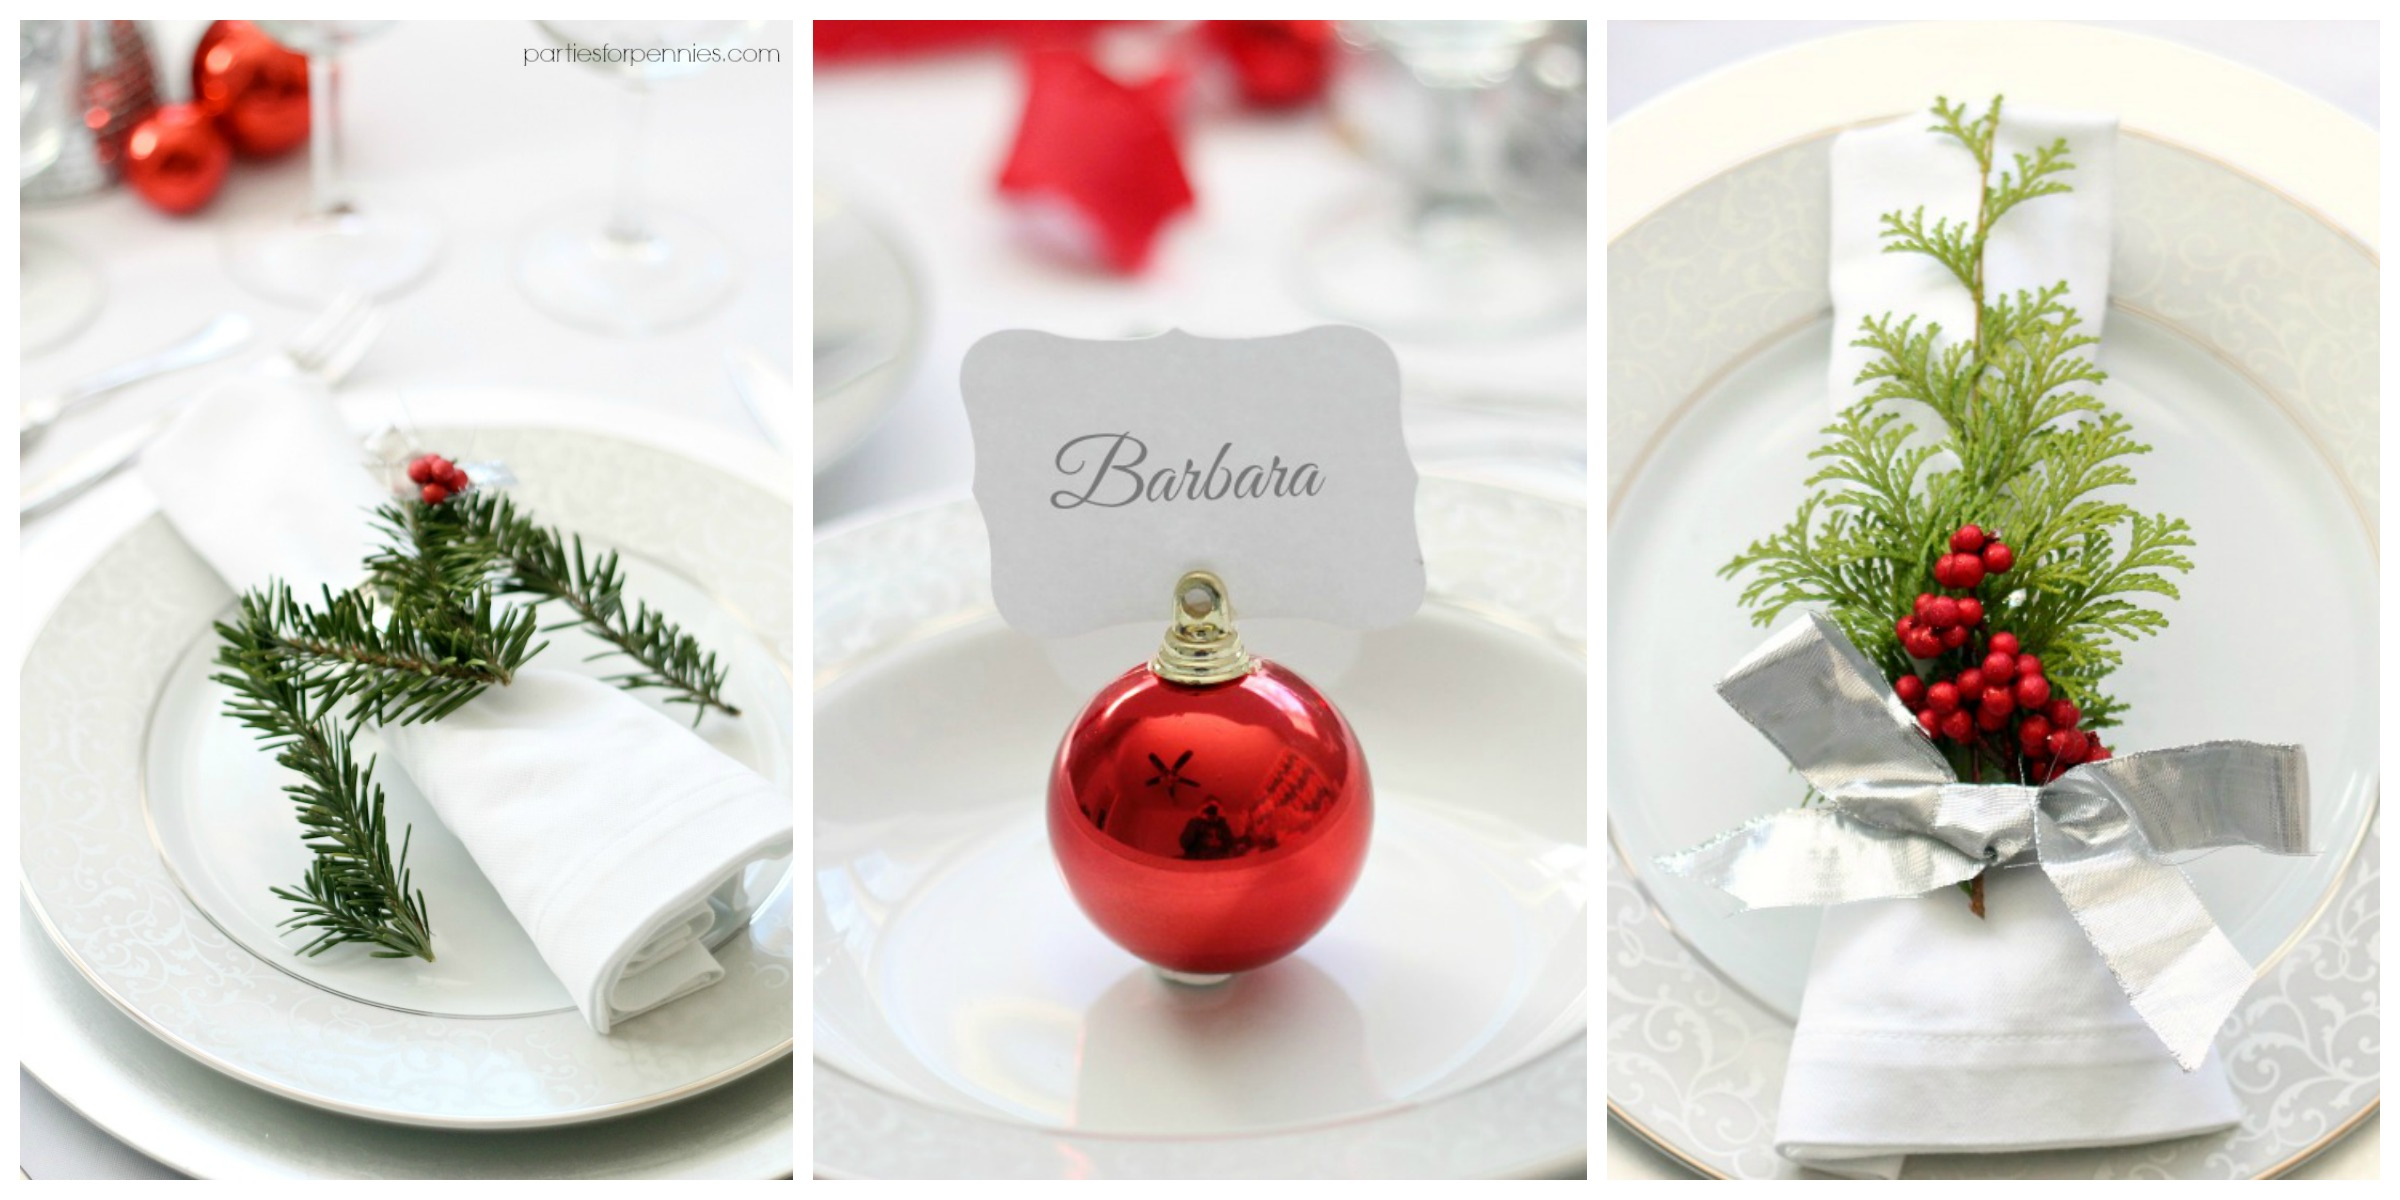 Formal Place Setting Guide Parties For Pennies: christmas place setting ideas